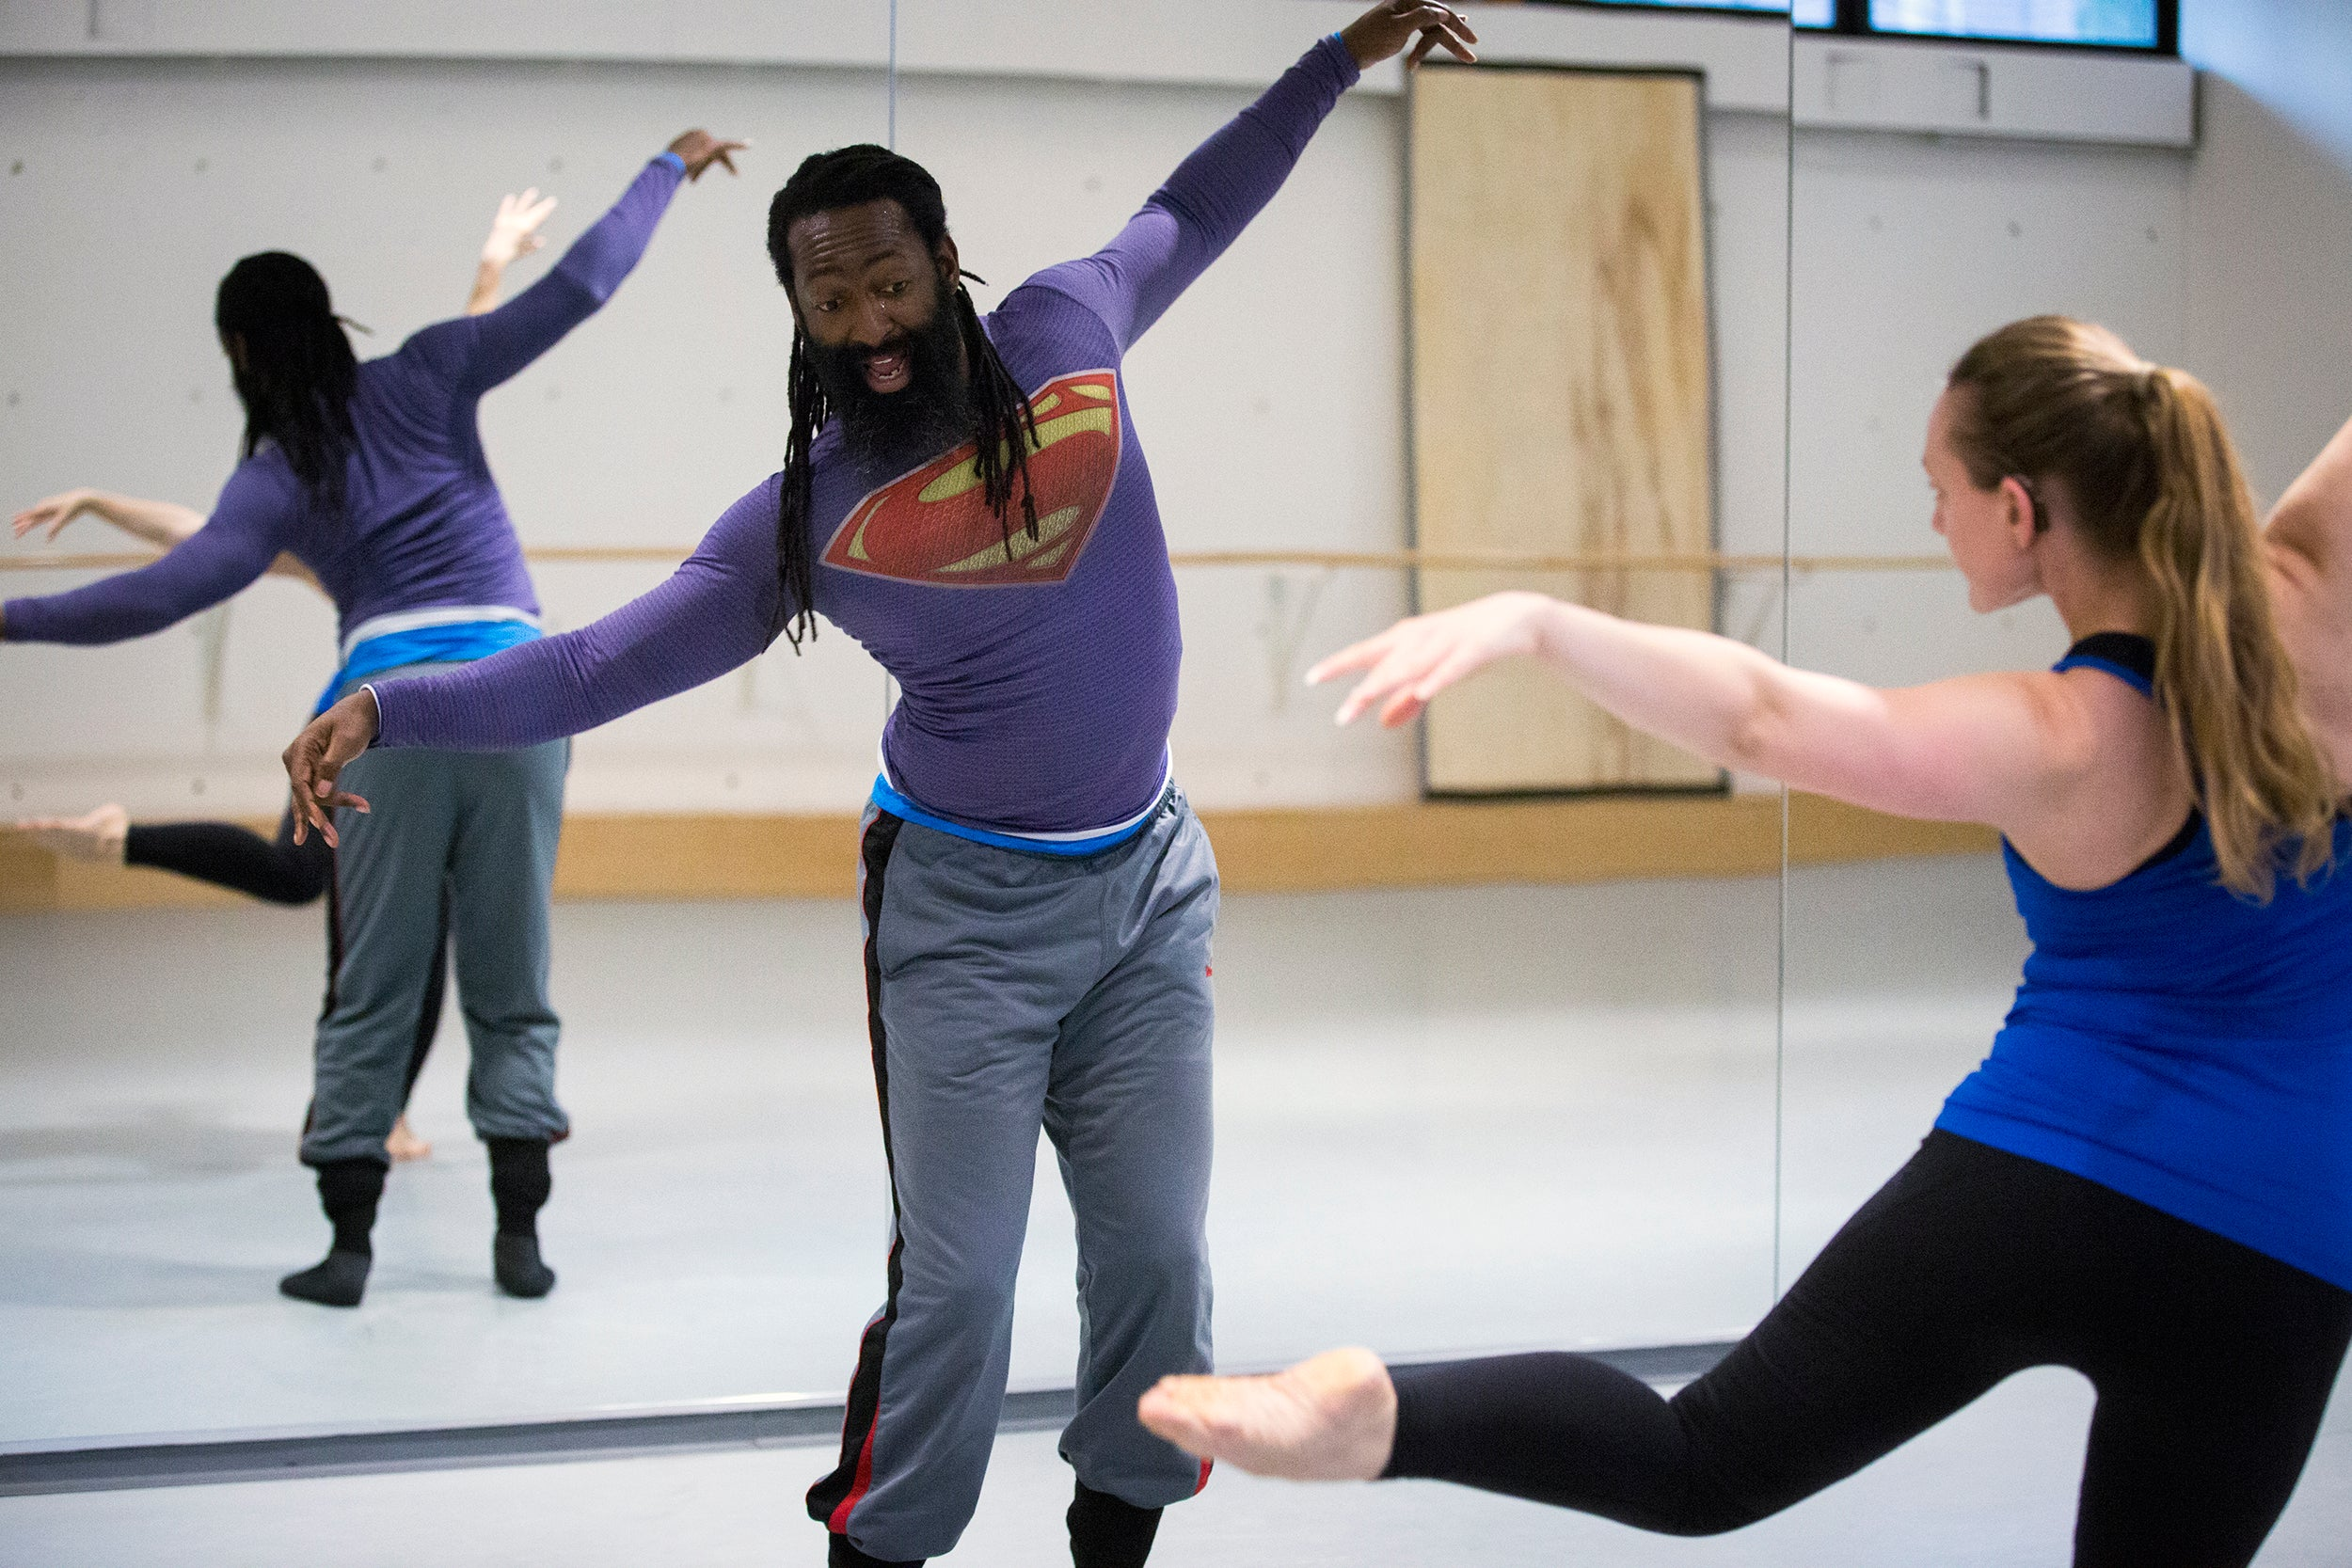 Antoine Hunter,Deaf choreographer, dancer,